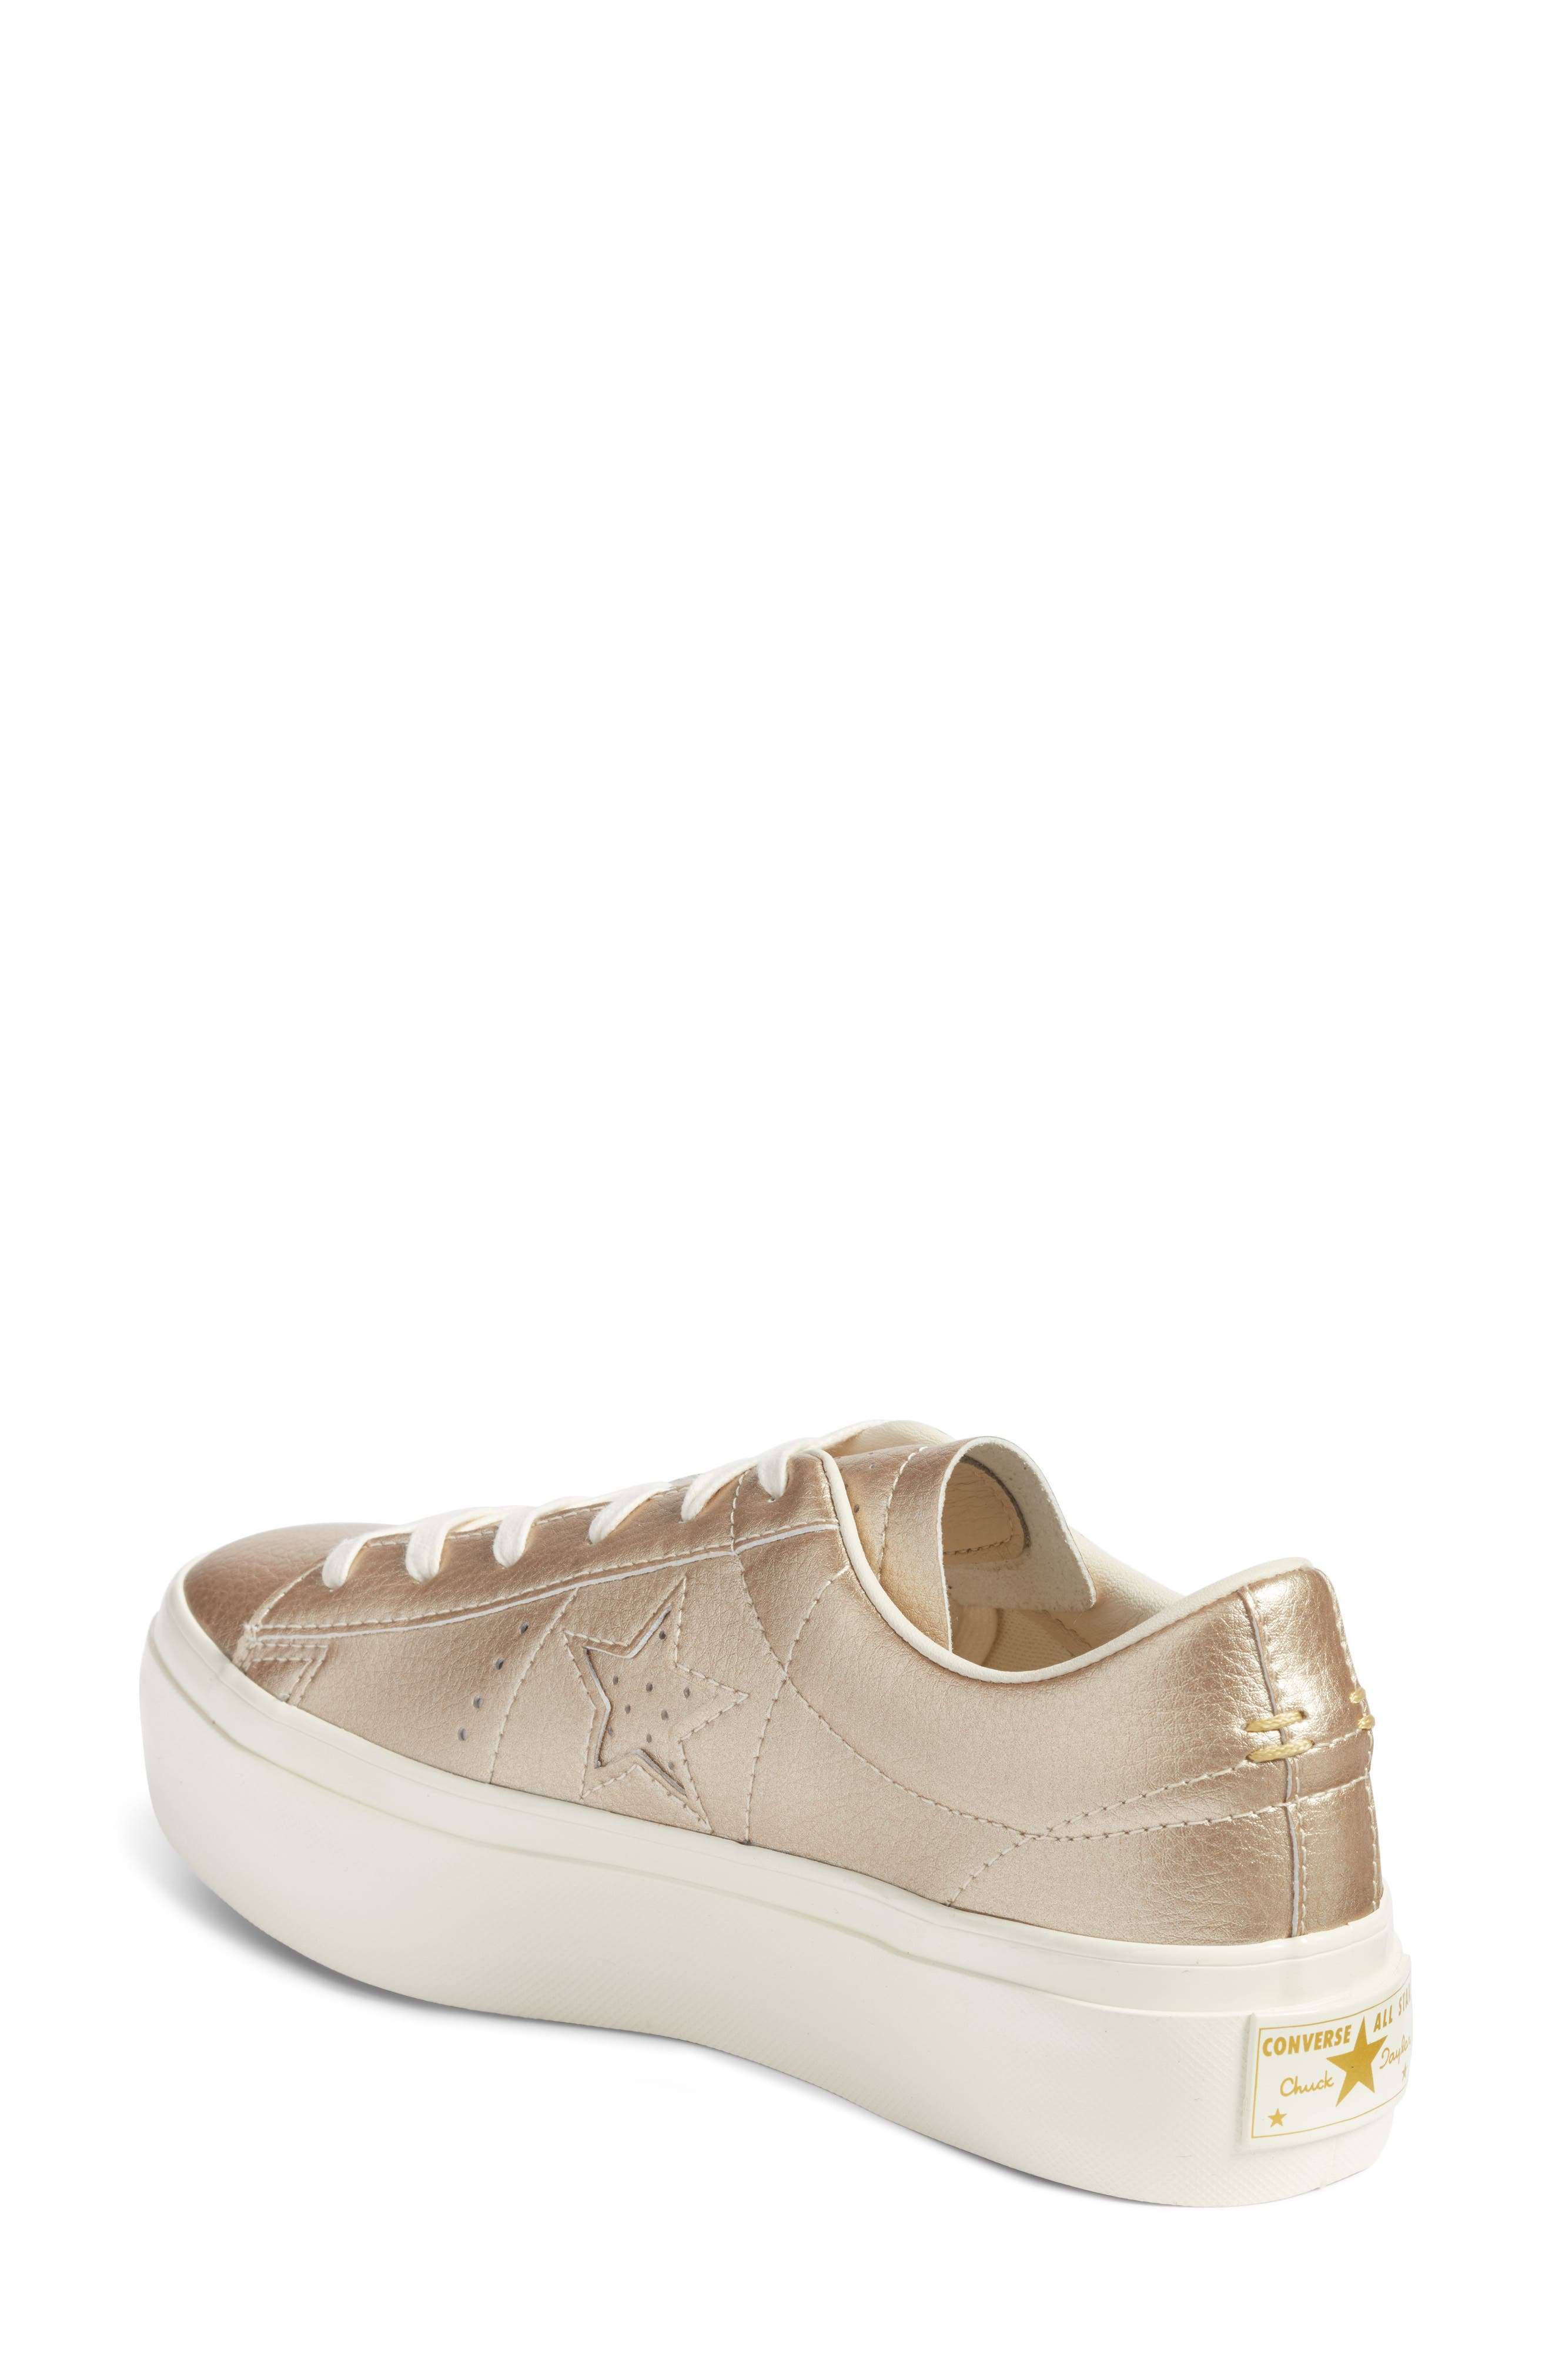 Chuck Taylor<sup>®</sup> All Star<sup>®</sup> One Star Metallic Platform Sneaker,                             Alternate thumbnail 2, color,